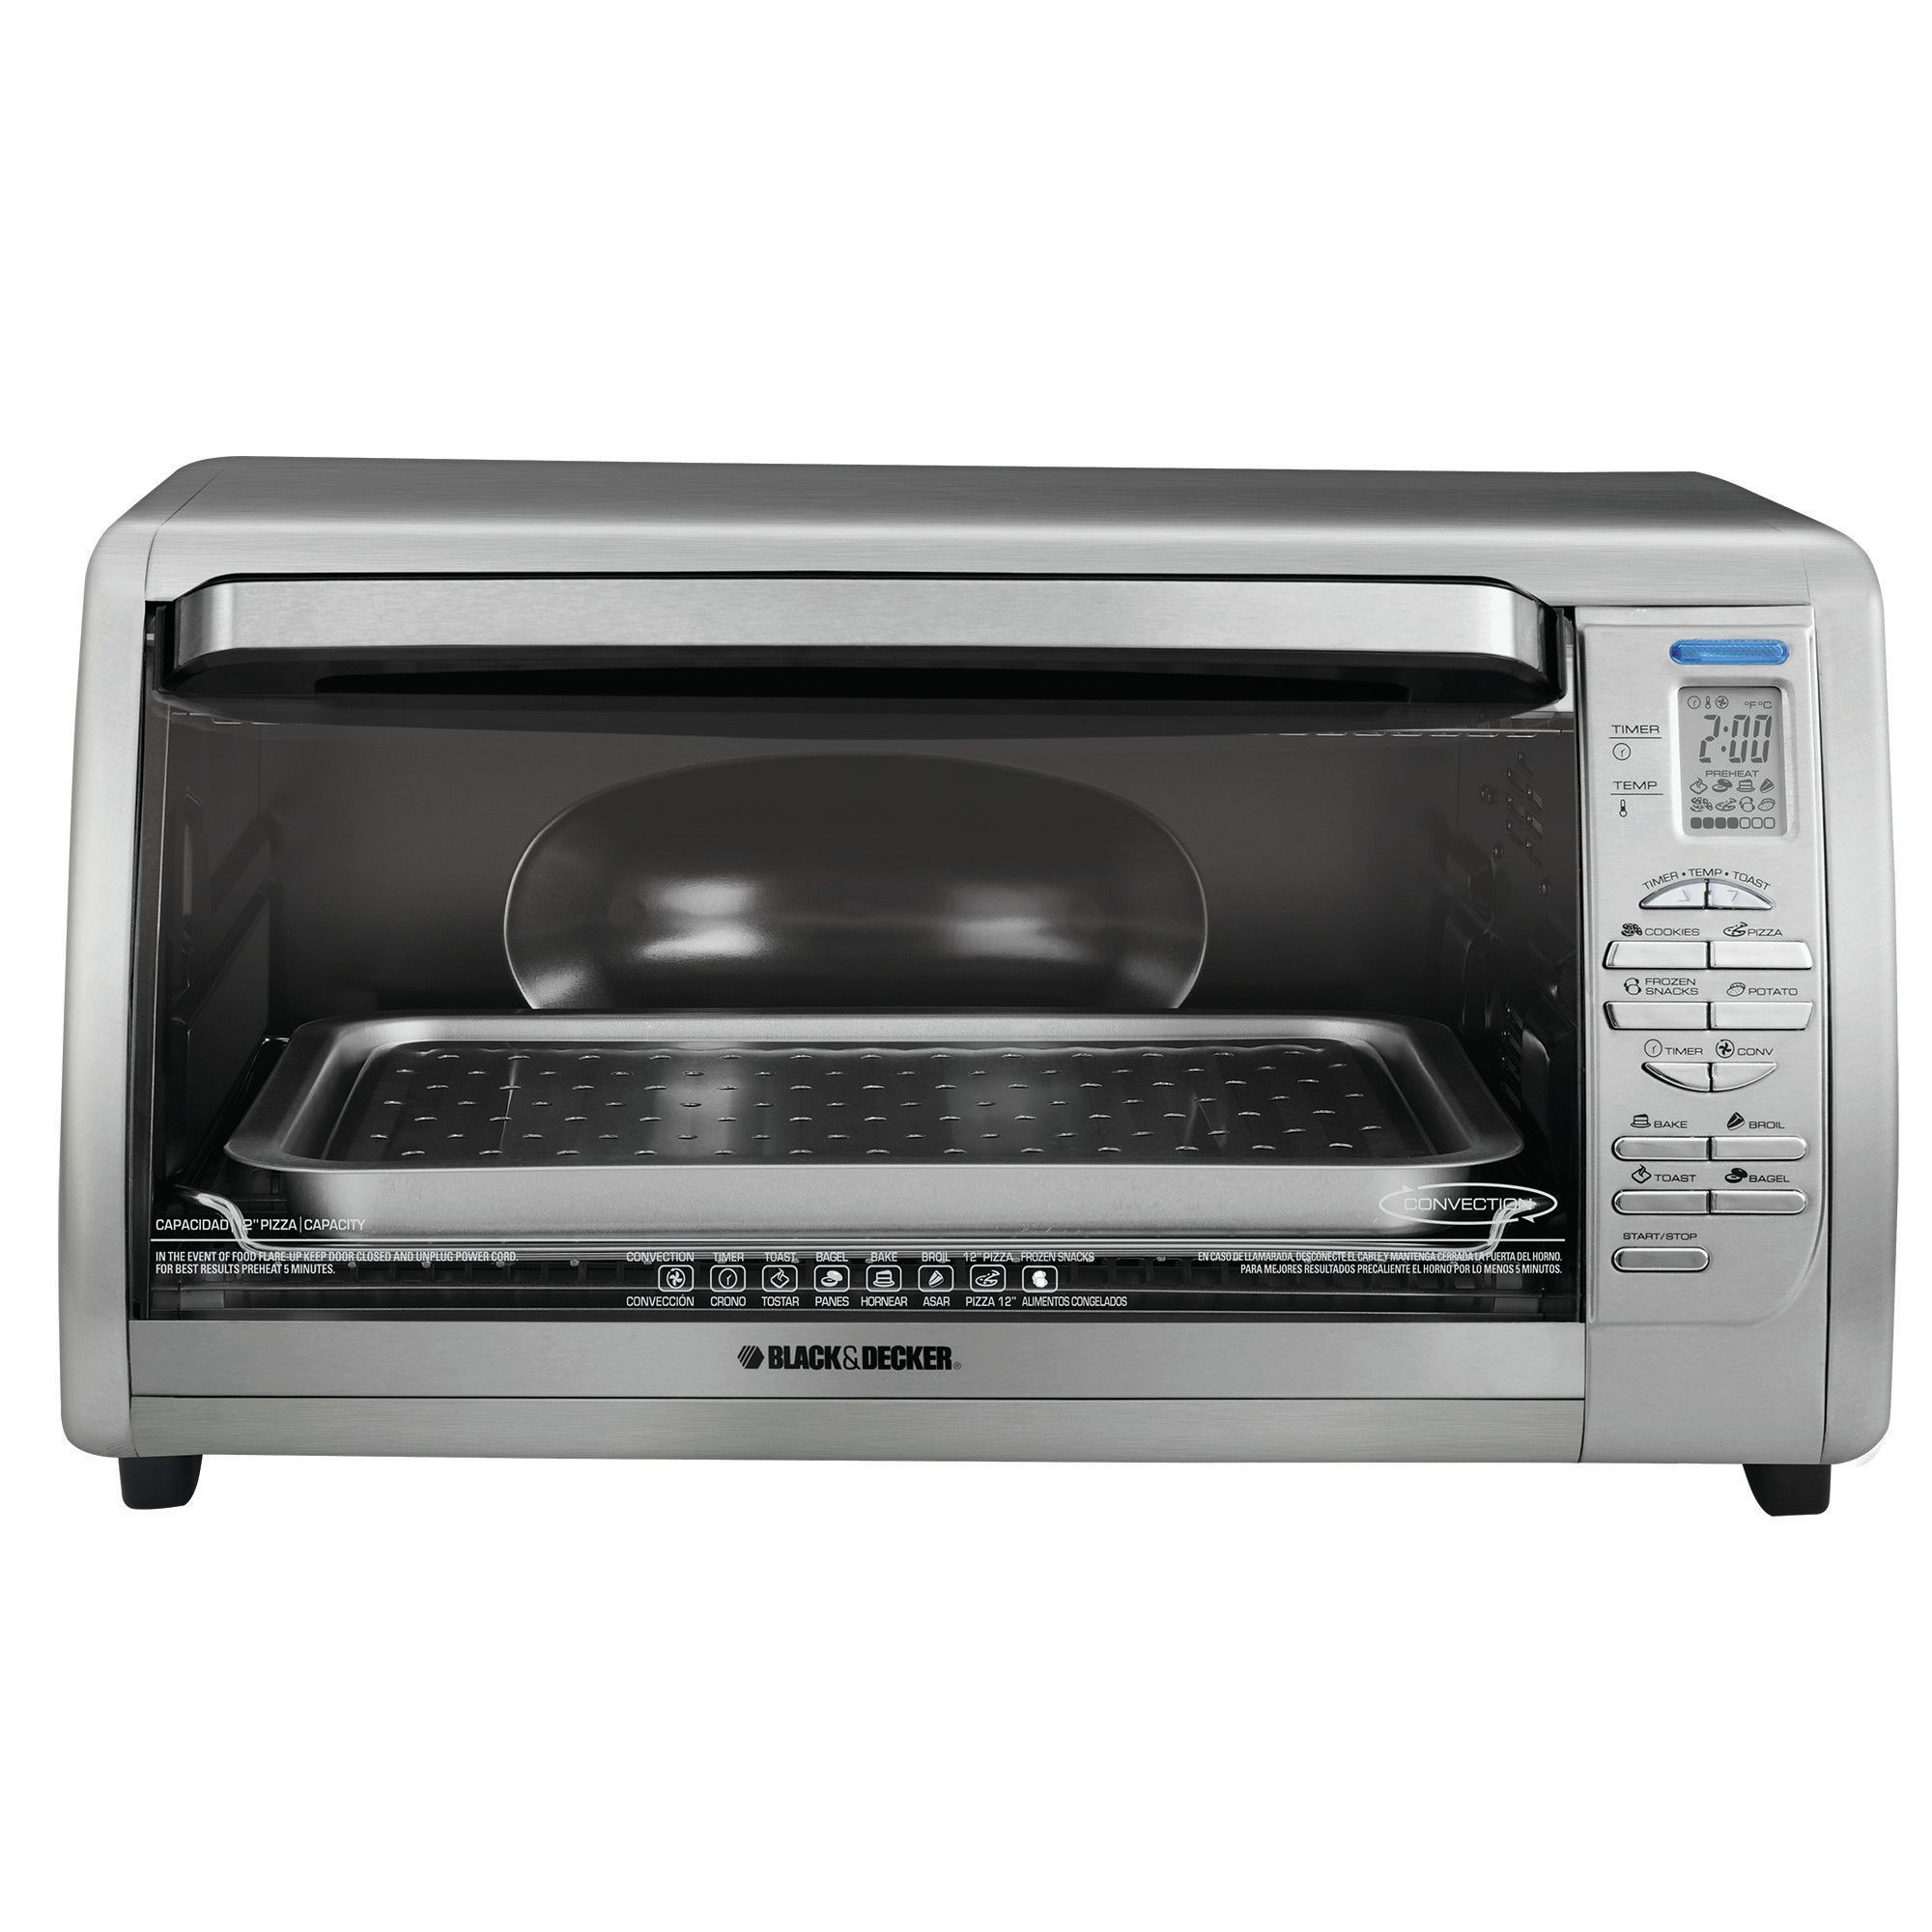 Digital Touchpad Toaster Oven Countertop Convection Oven